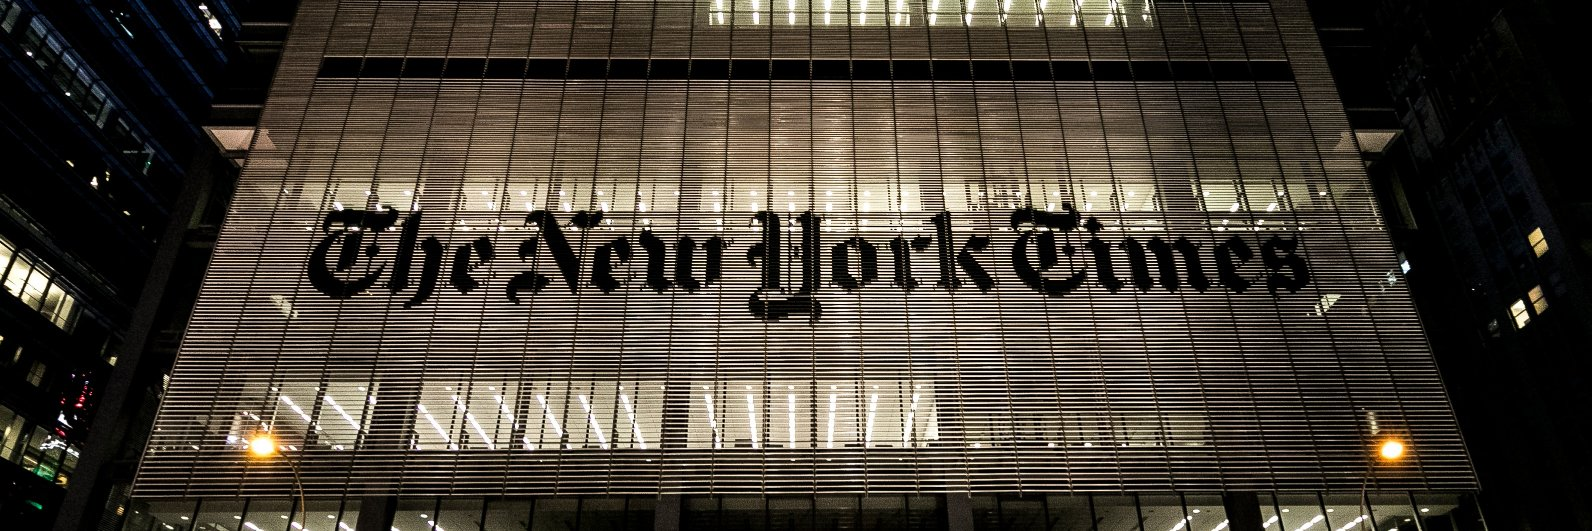 2 of the journalists accused Condé Nast, the magazine's parent company, of failing to offer them pay that was comme… https://t.co/Dn5dTIuarG